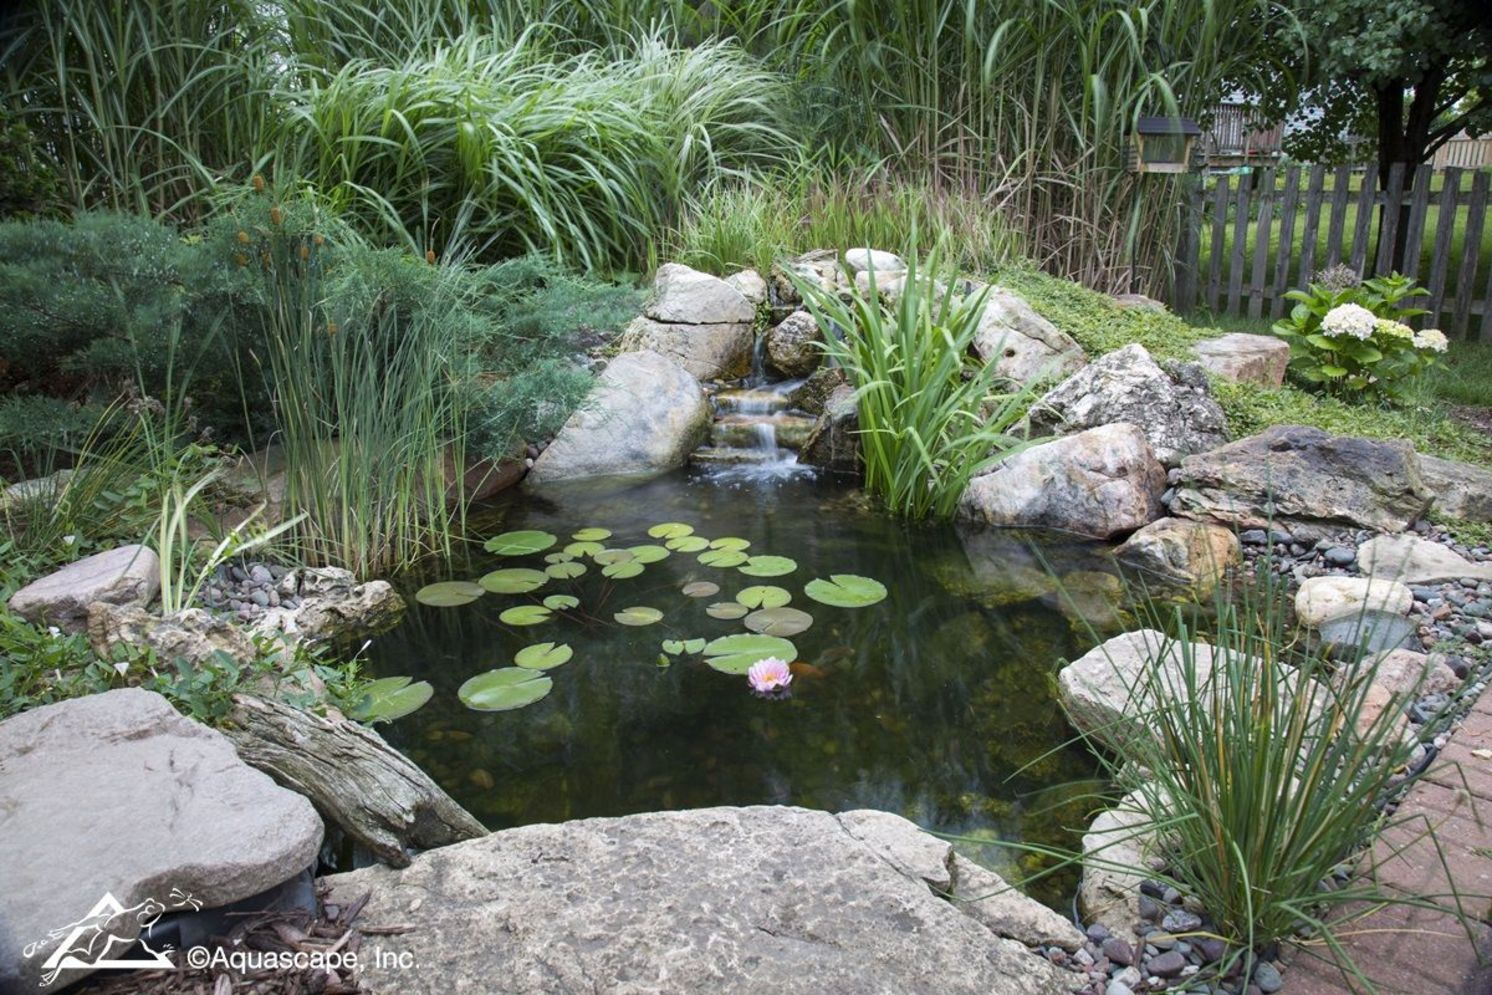 Inspiring small fish pond designs to upgrade the outdoor landscape for more lively and refreshing Image 33